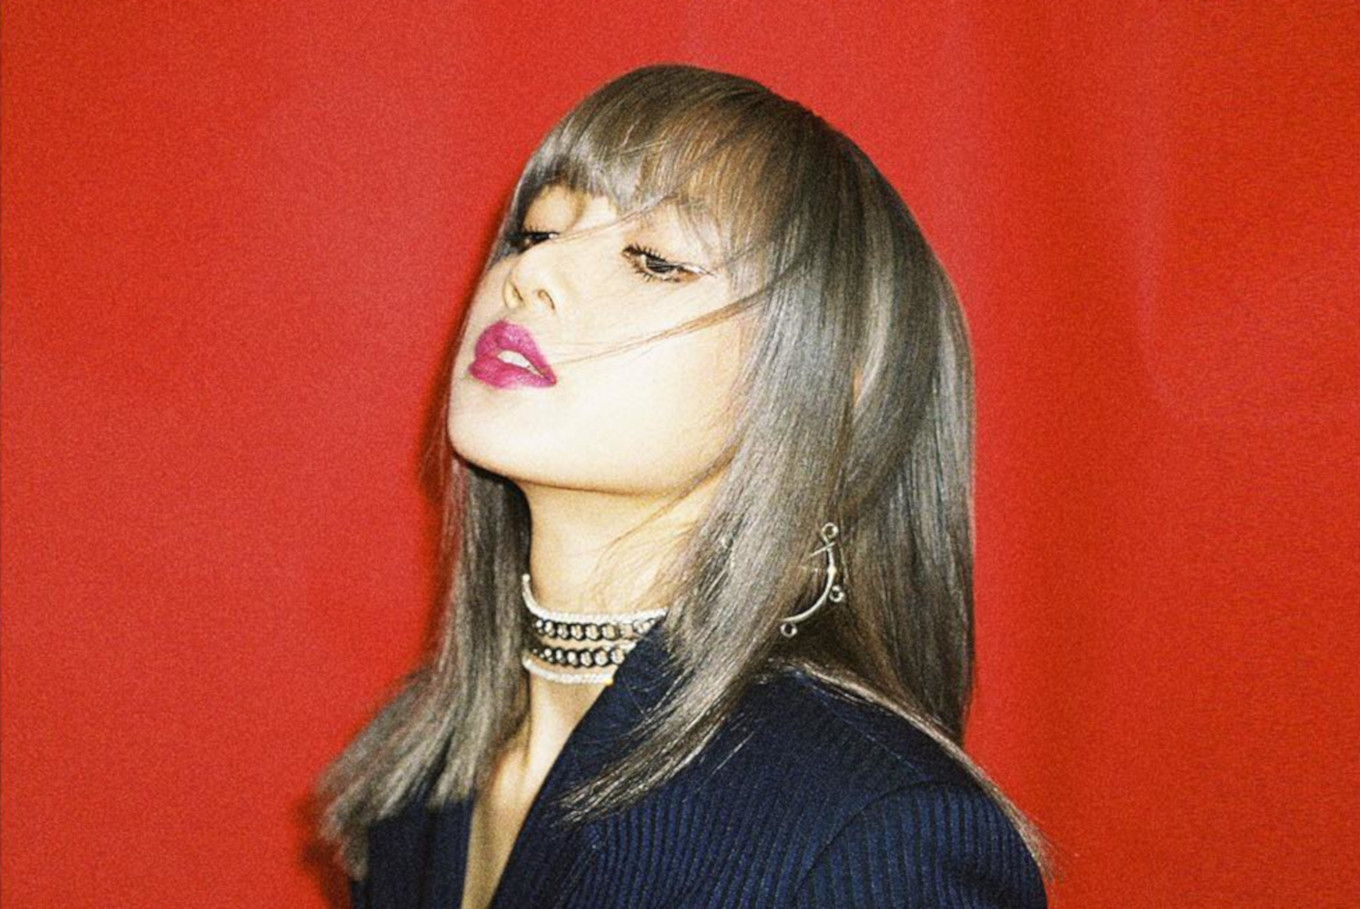 Ex-manager scams Blackpink's Lisa of RM3.5 million to fund gambling habit